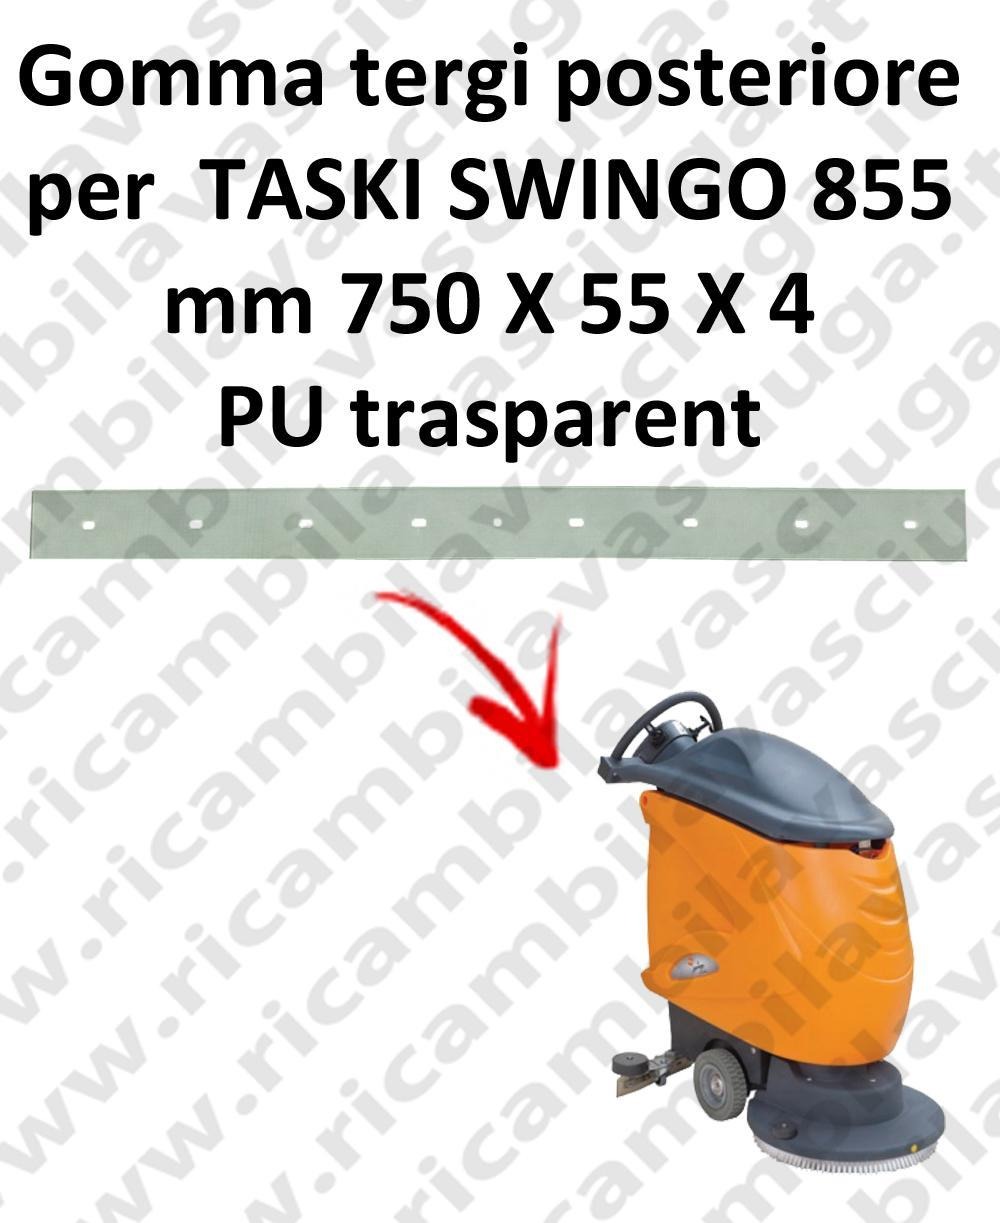 SWINGO 855  Back Squeegee rubber for TASKI accessories, reaplacement, spare parts,o scrubber dryer squeegee